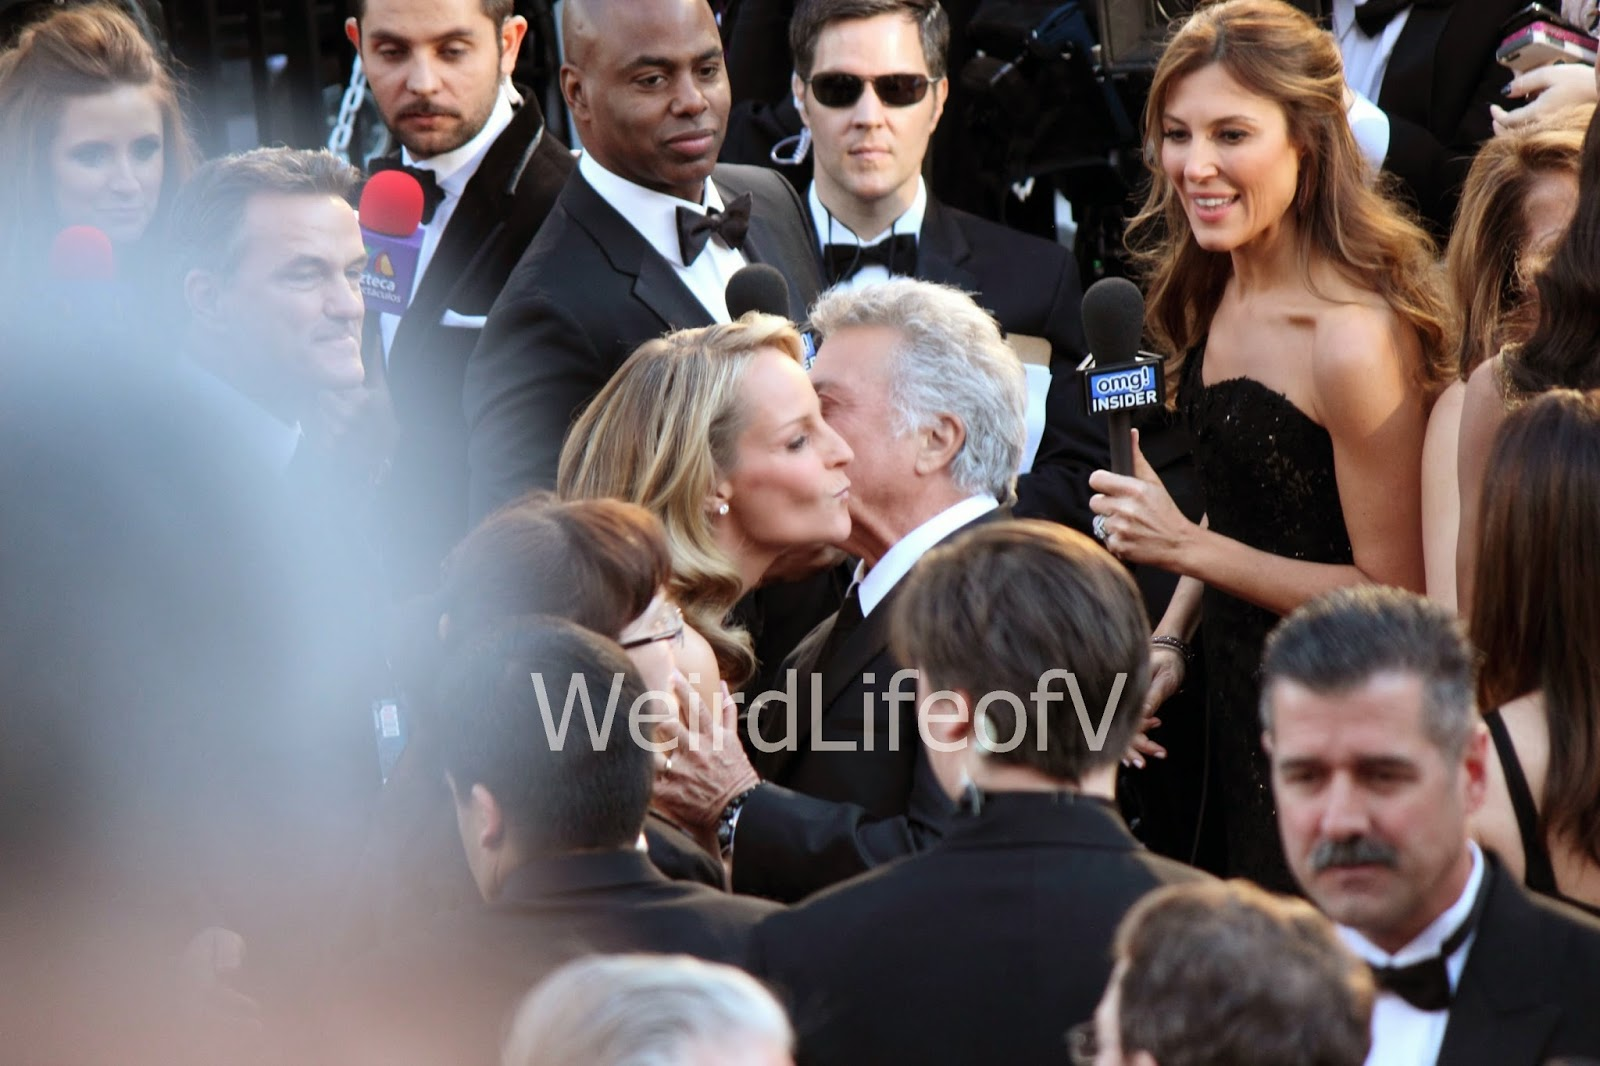 Helen Hunt and Dustin Hoffman greet each other with cheek kisses on the 2013 Oscars red carpet